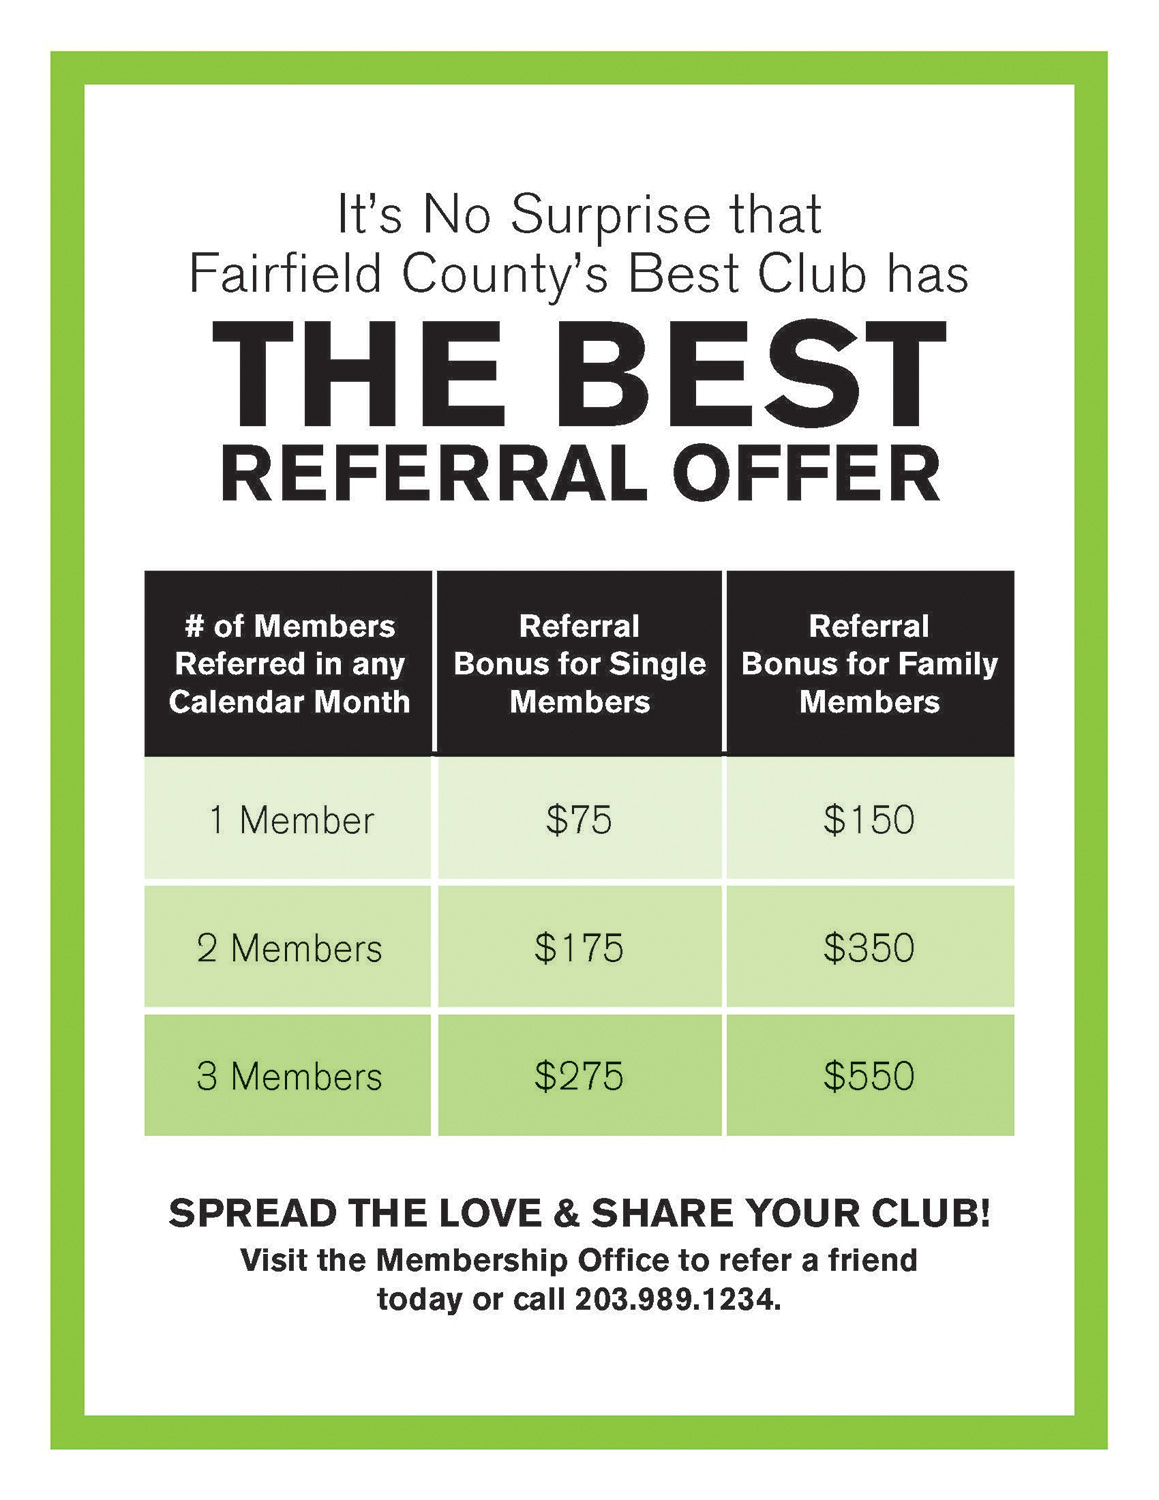 The Best Referral Offer